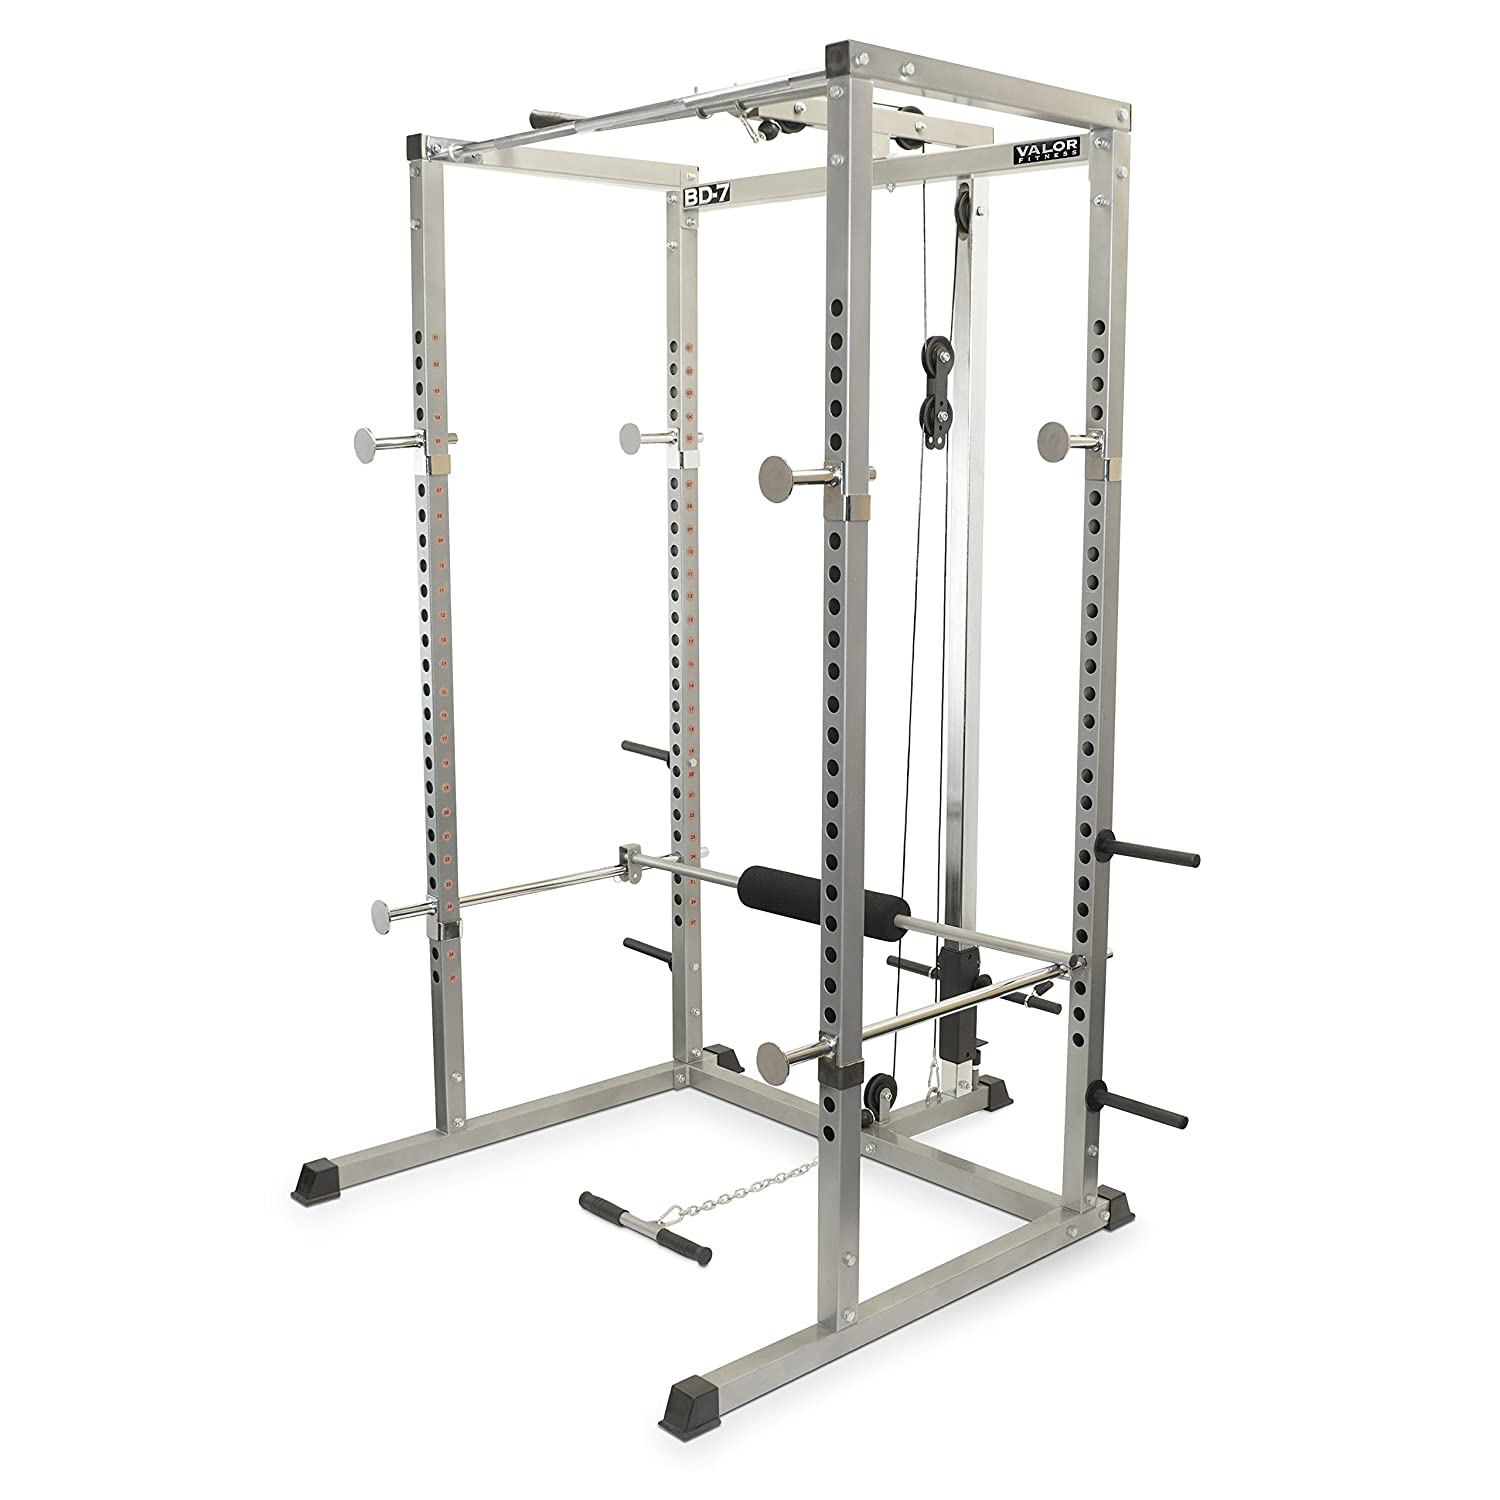 #4 Valor Fitness BD-7 Power Rack With Lat Pull Attachment